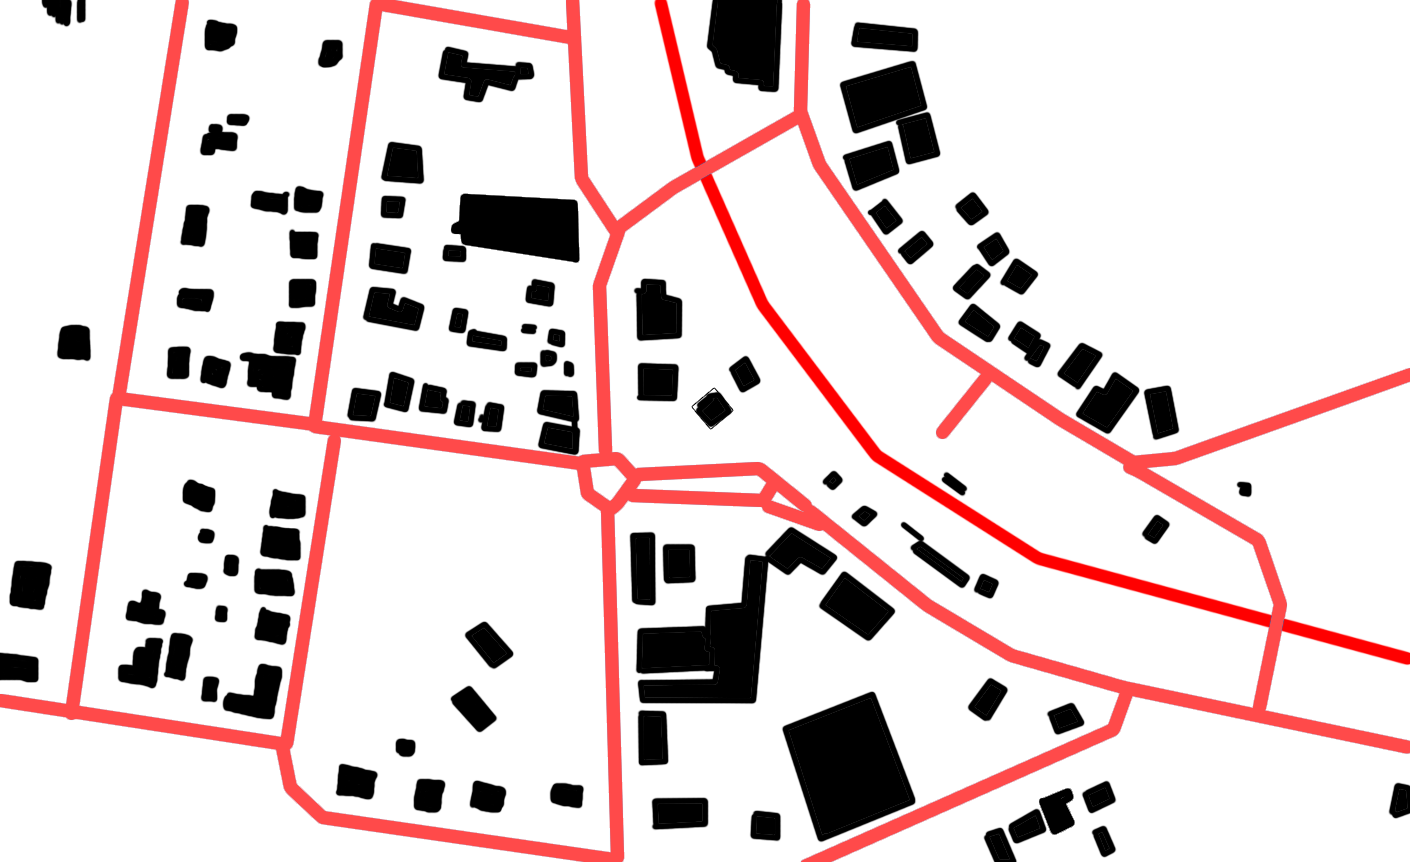 figure ground map of city centre